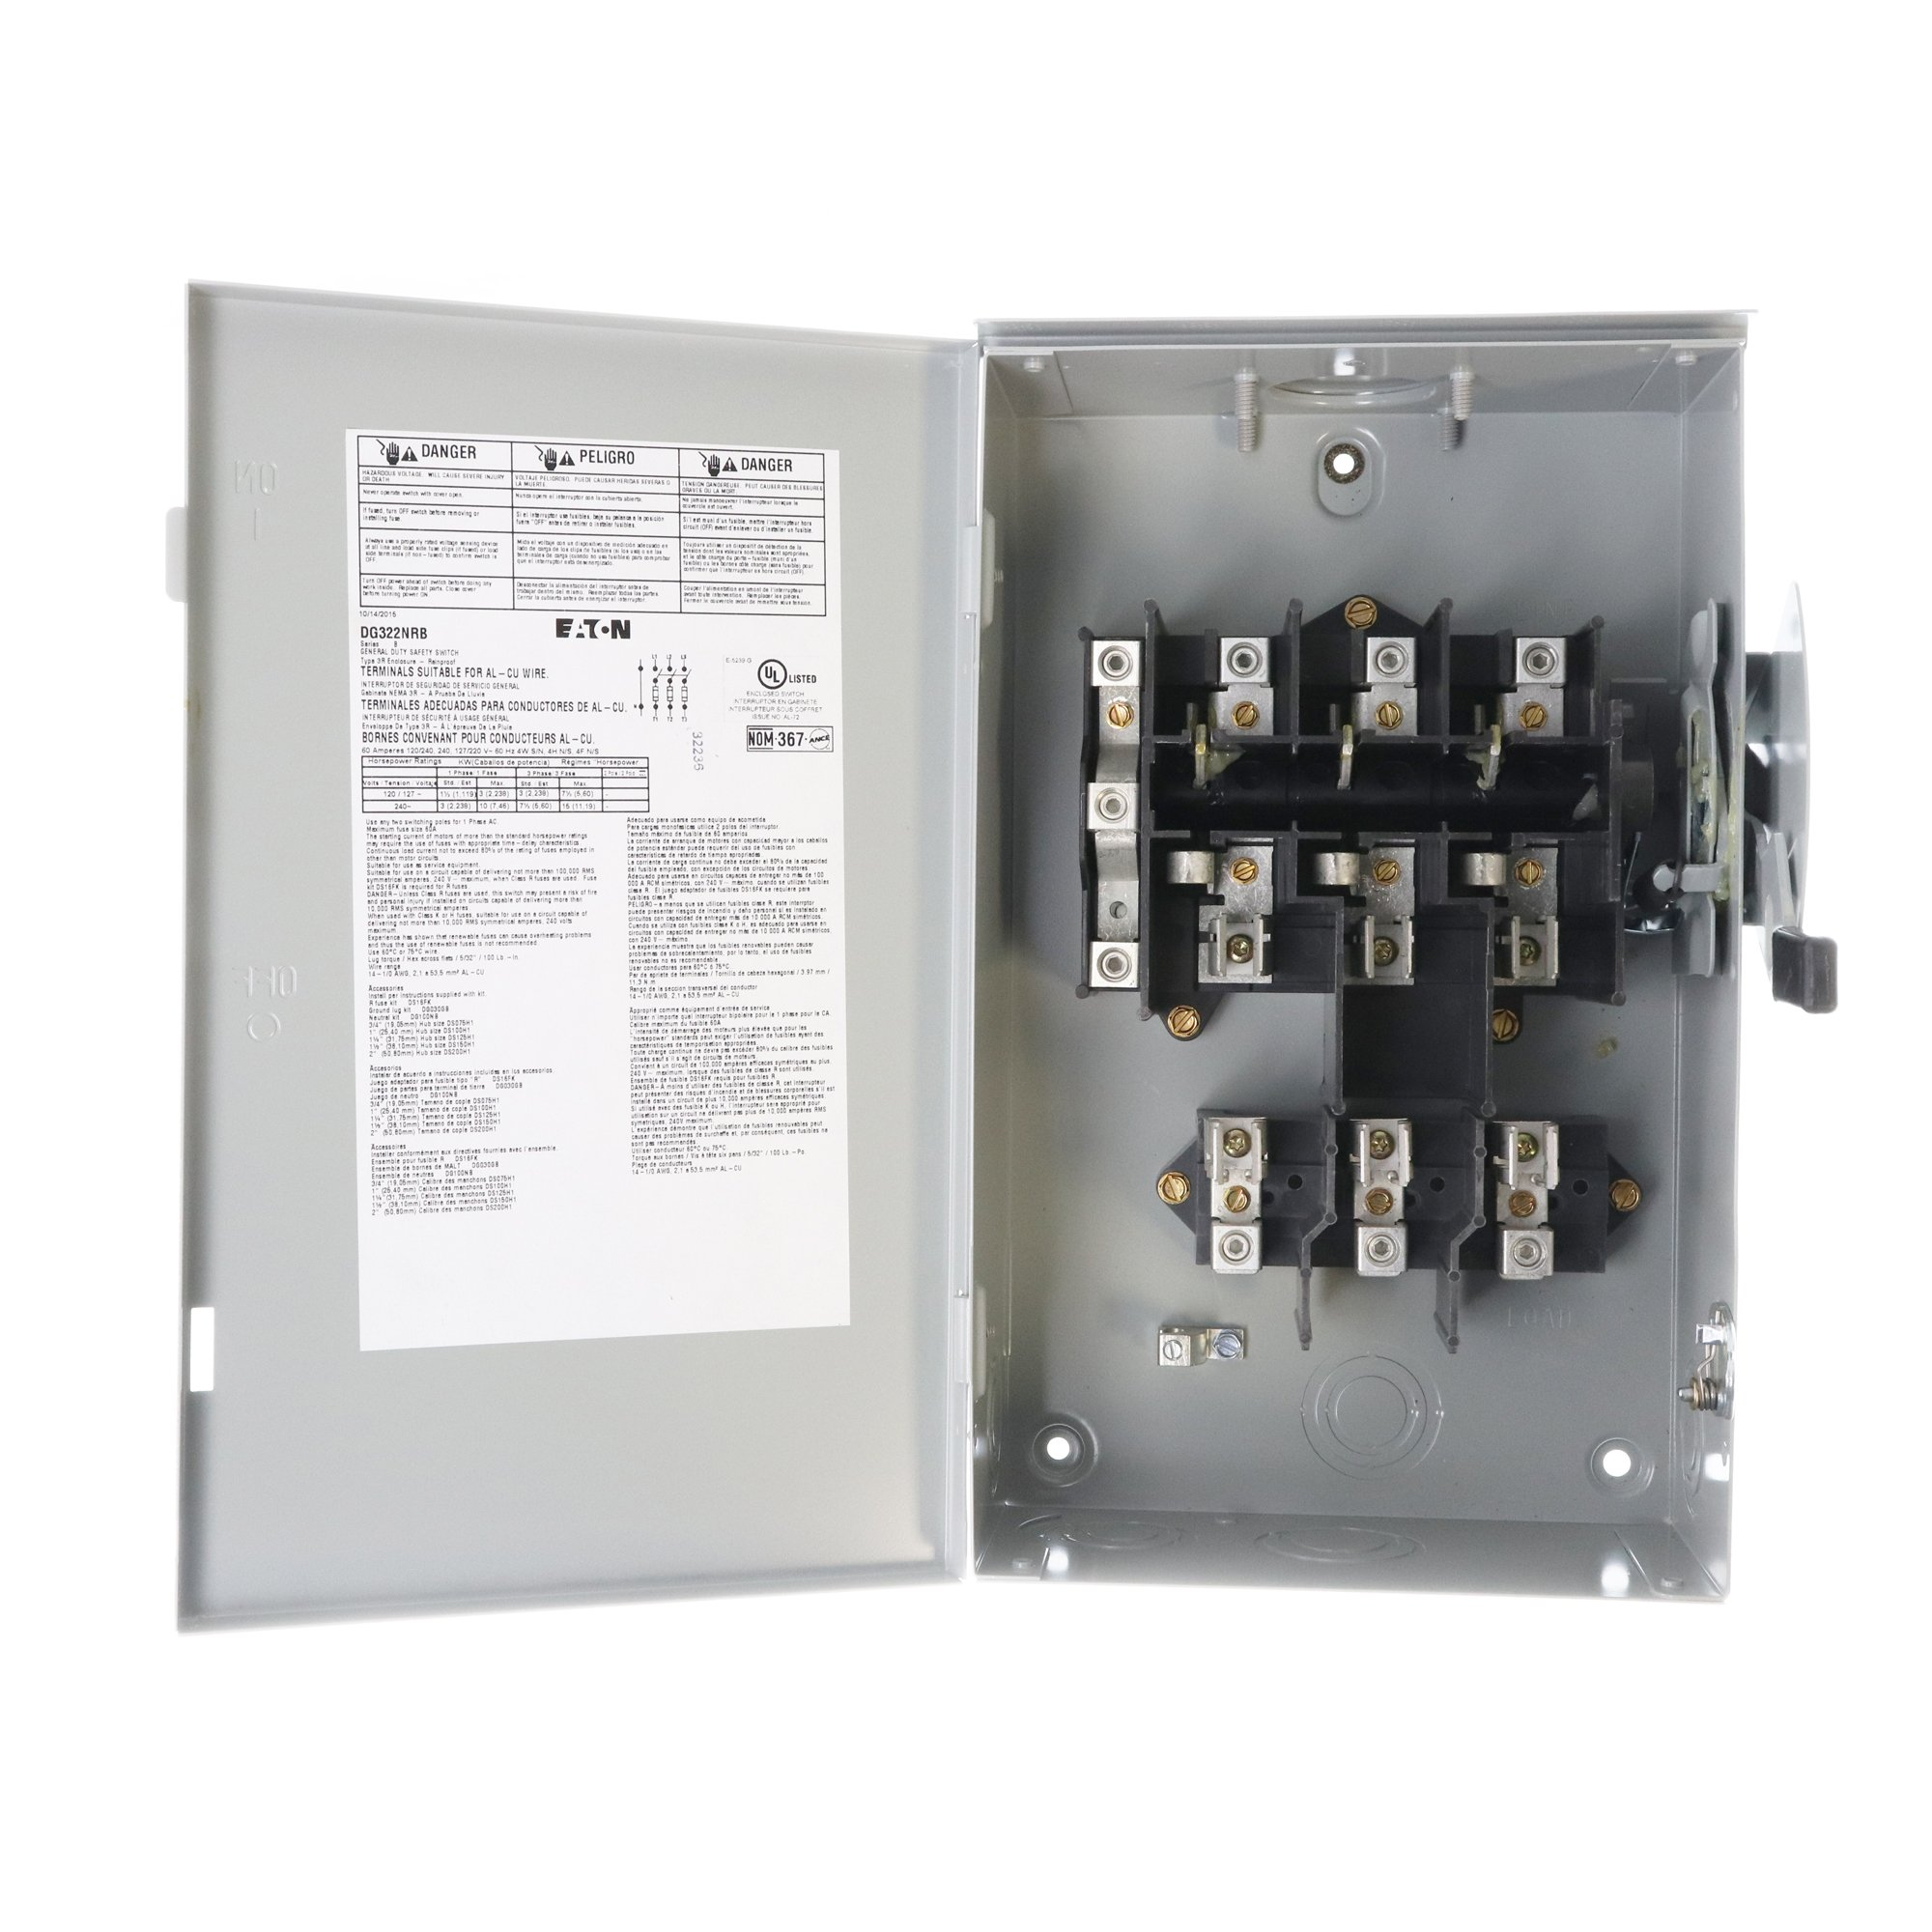 Eaton DG322NRB 4 Wire 3 Pole Fusible B Series General-Duty Safety Switch 240 Volt AC 60 Amp NEMA 3R by Eaton (Image #2)